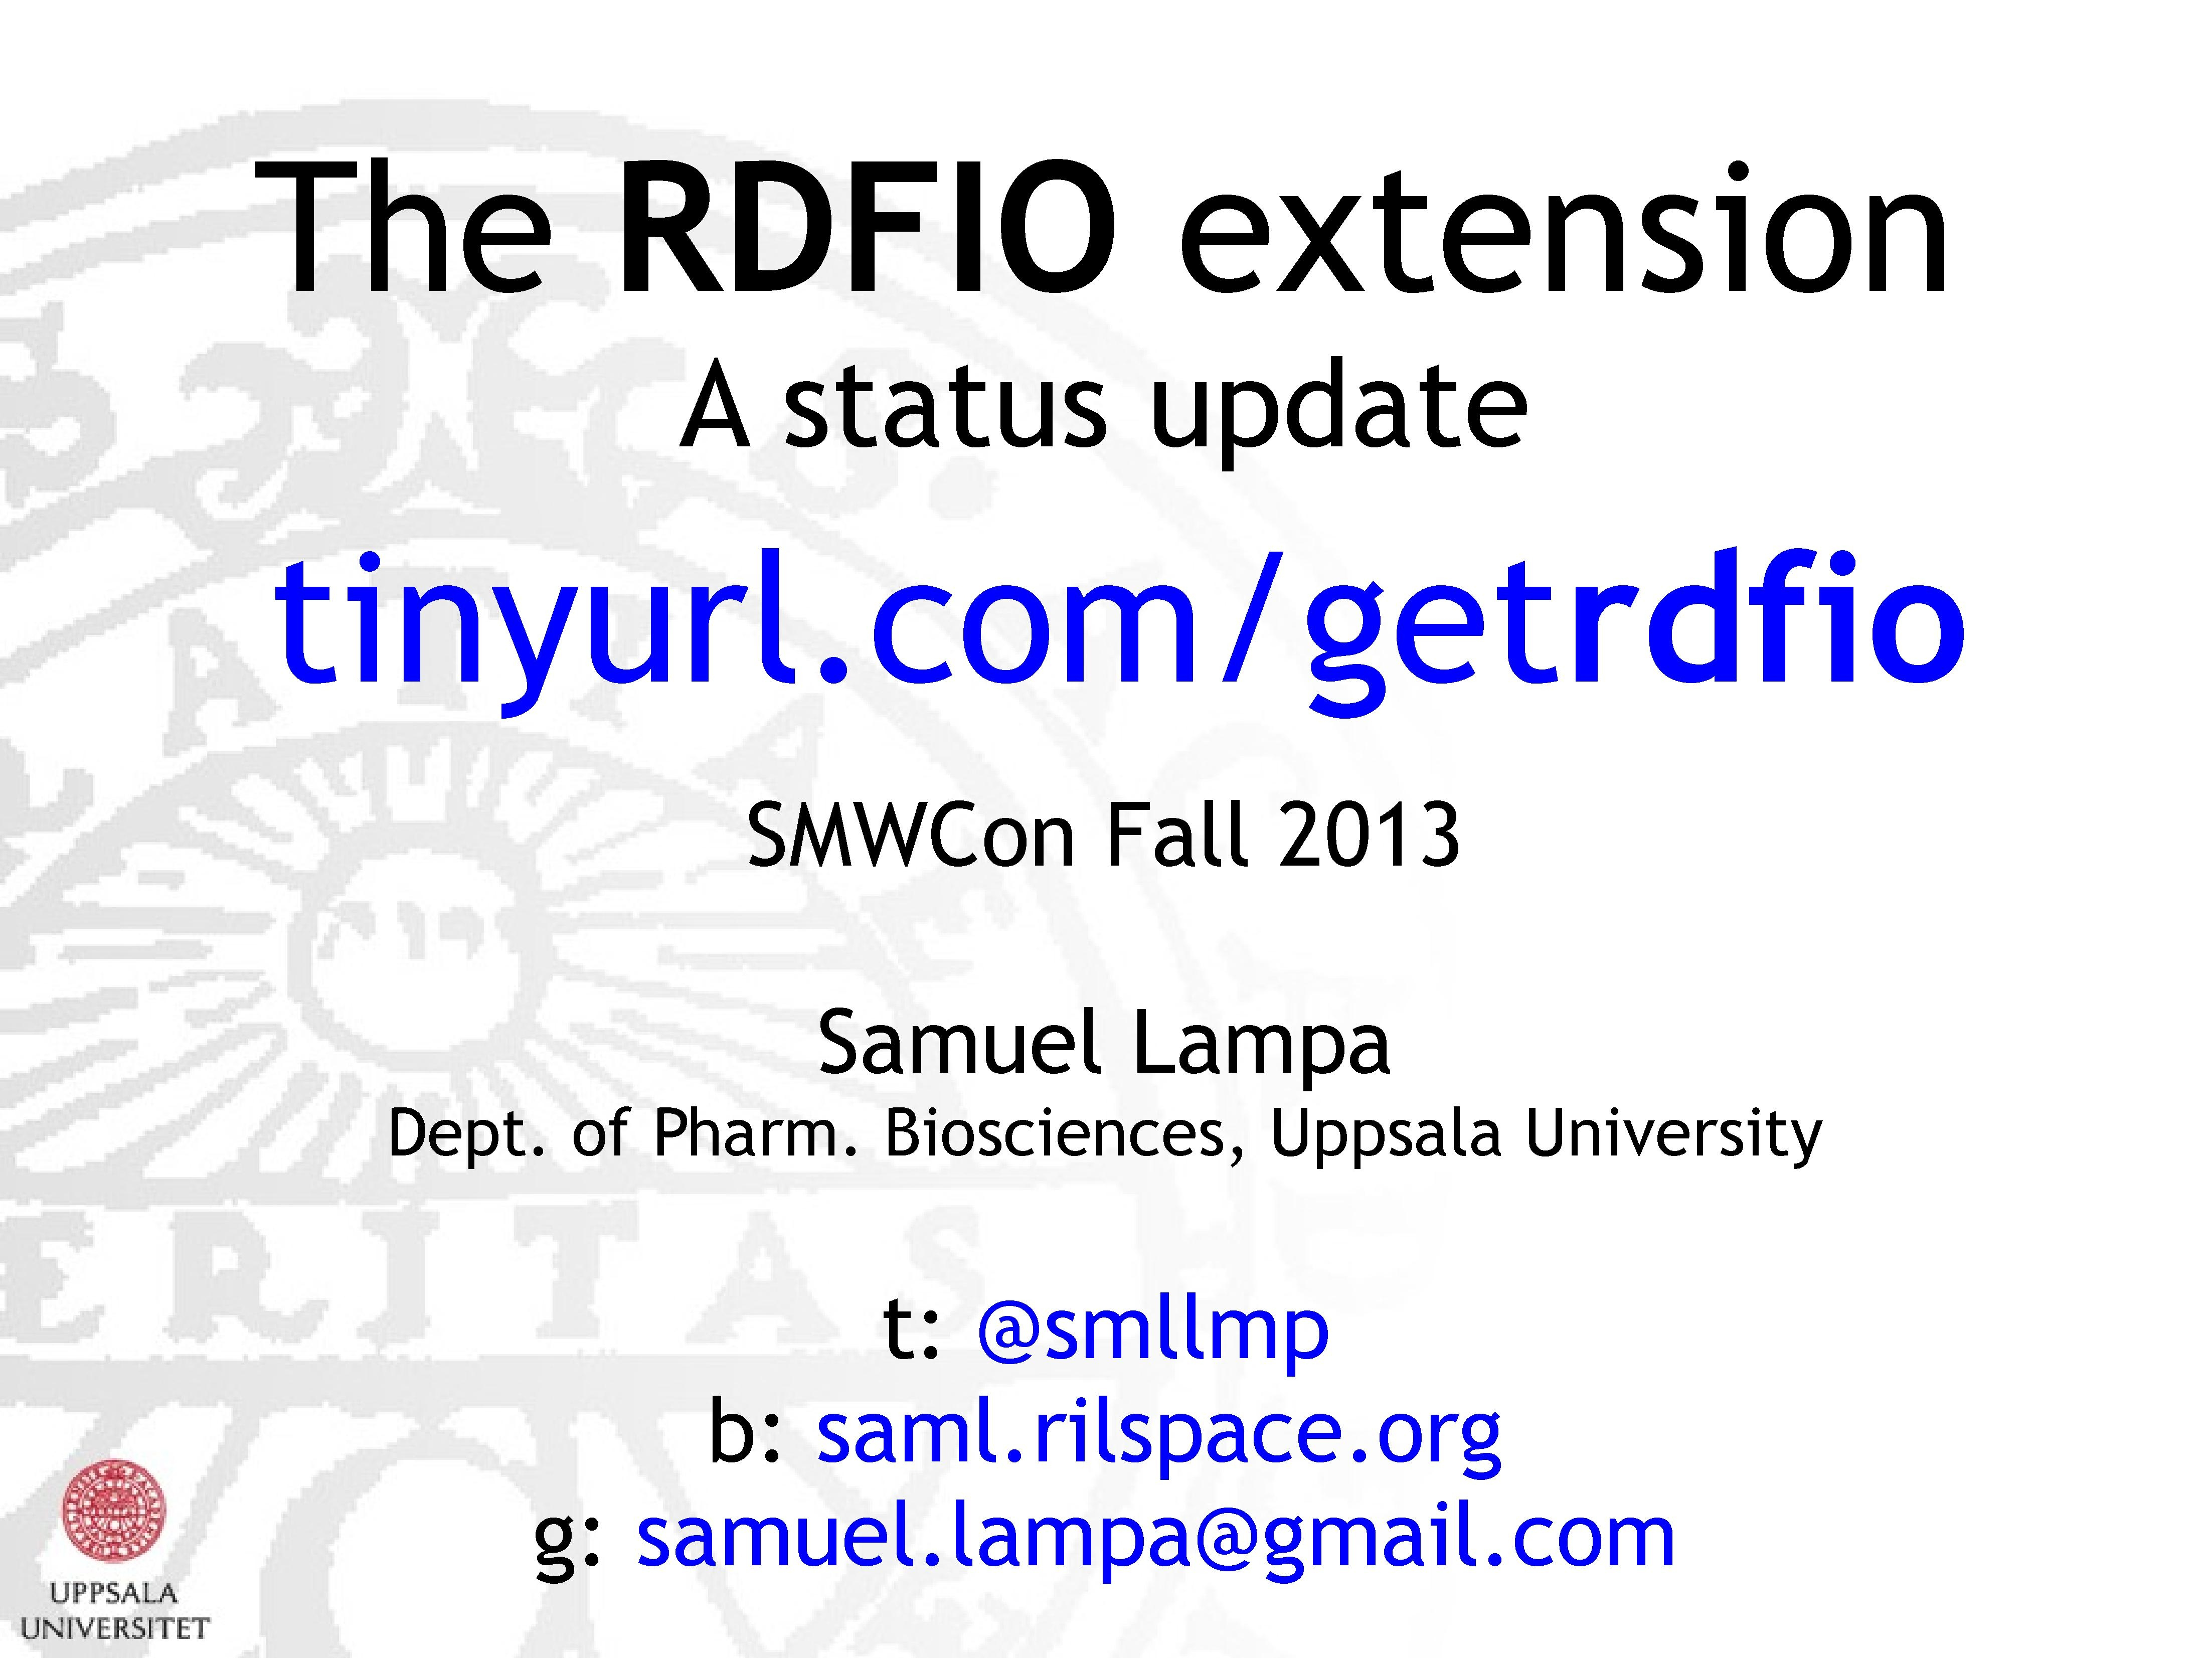 The RDFIO extension - a status update